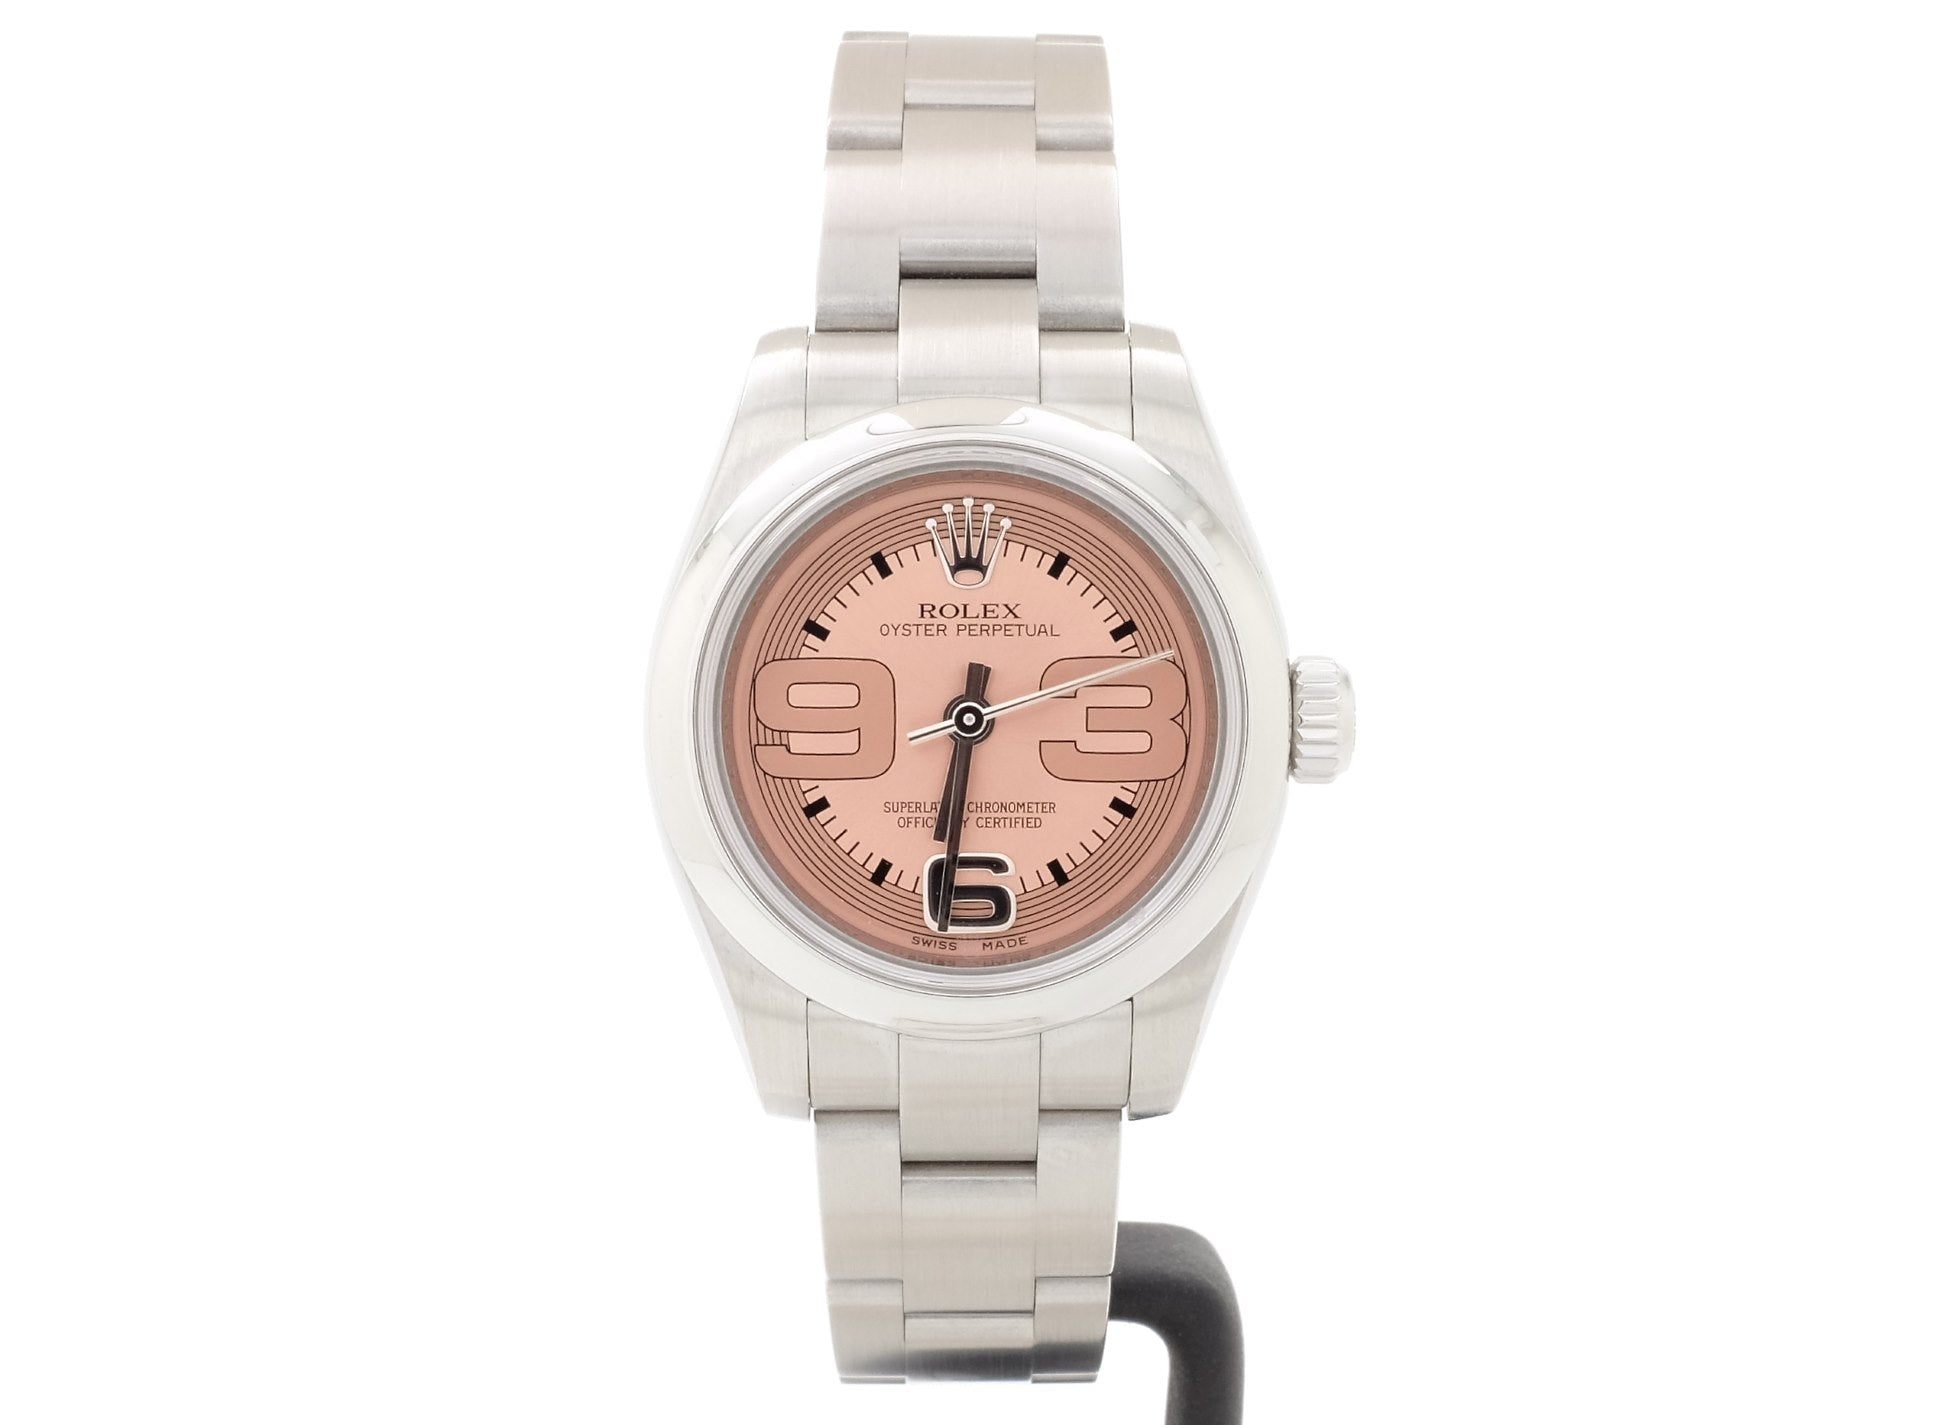 Ladies' 2010 26mm Rolex OYSTER Model 176200 with Salmon-Pink Dial